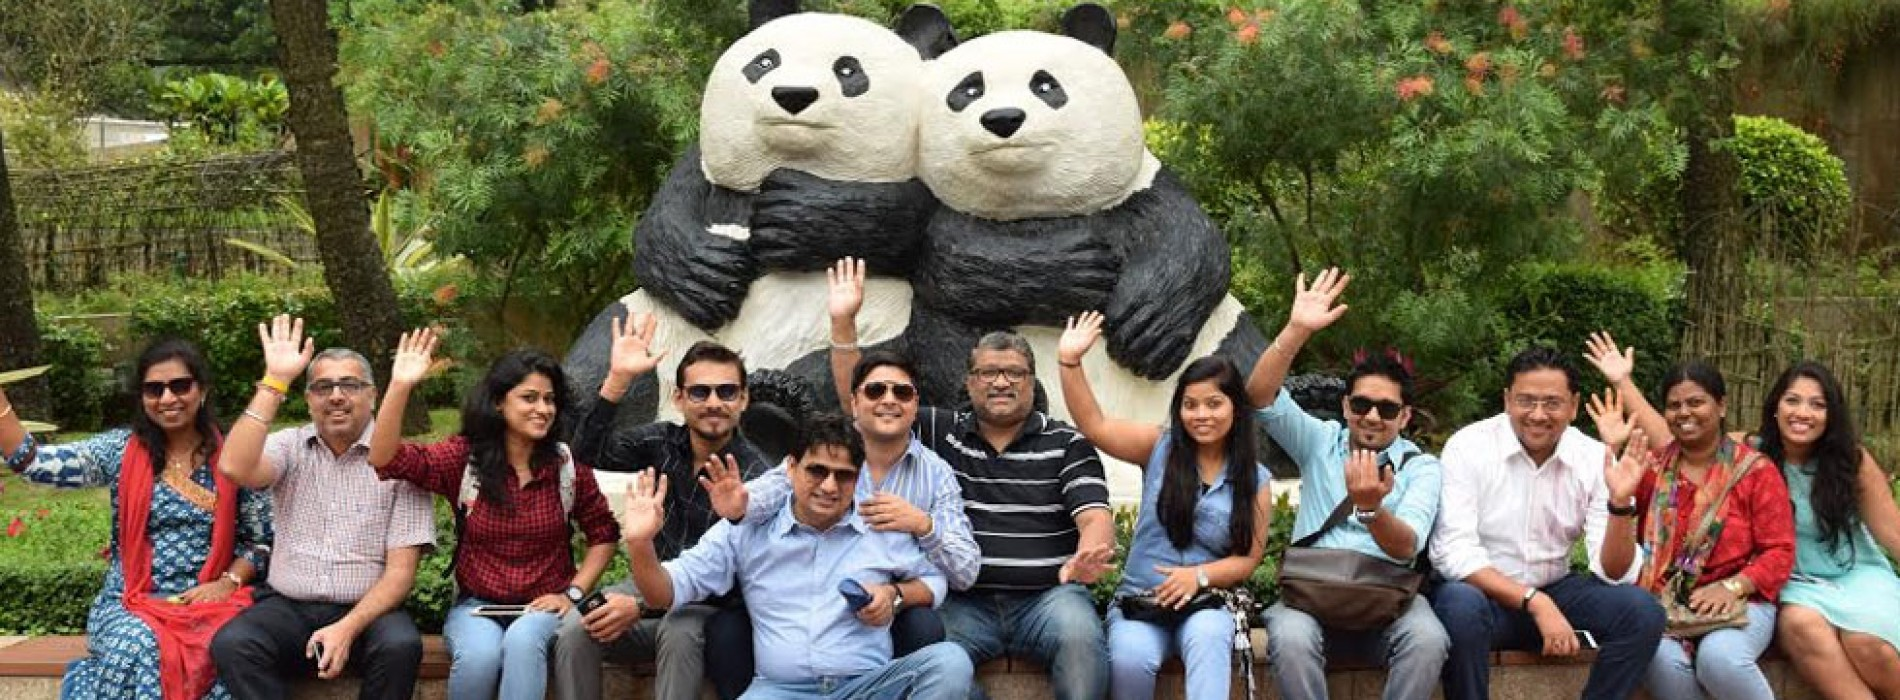 MGTO conducted FAM trip for top travel agents from India